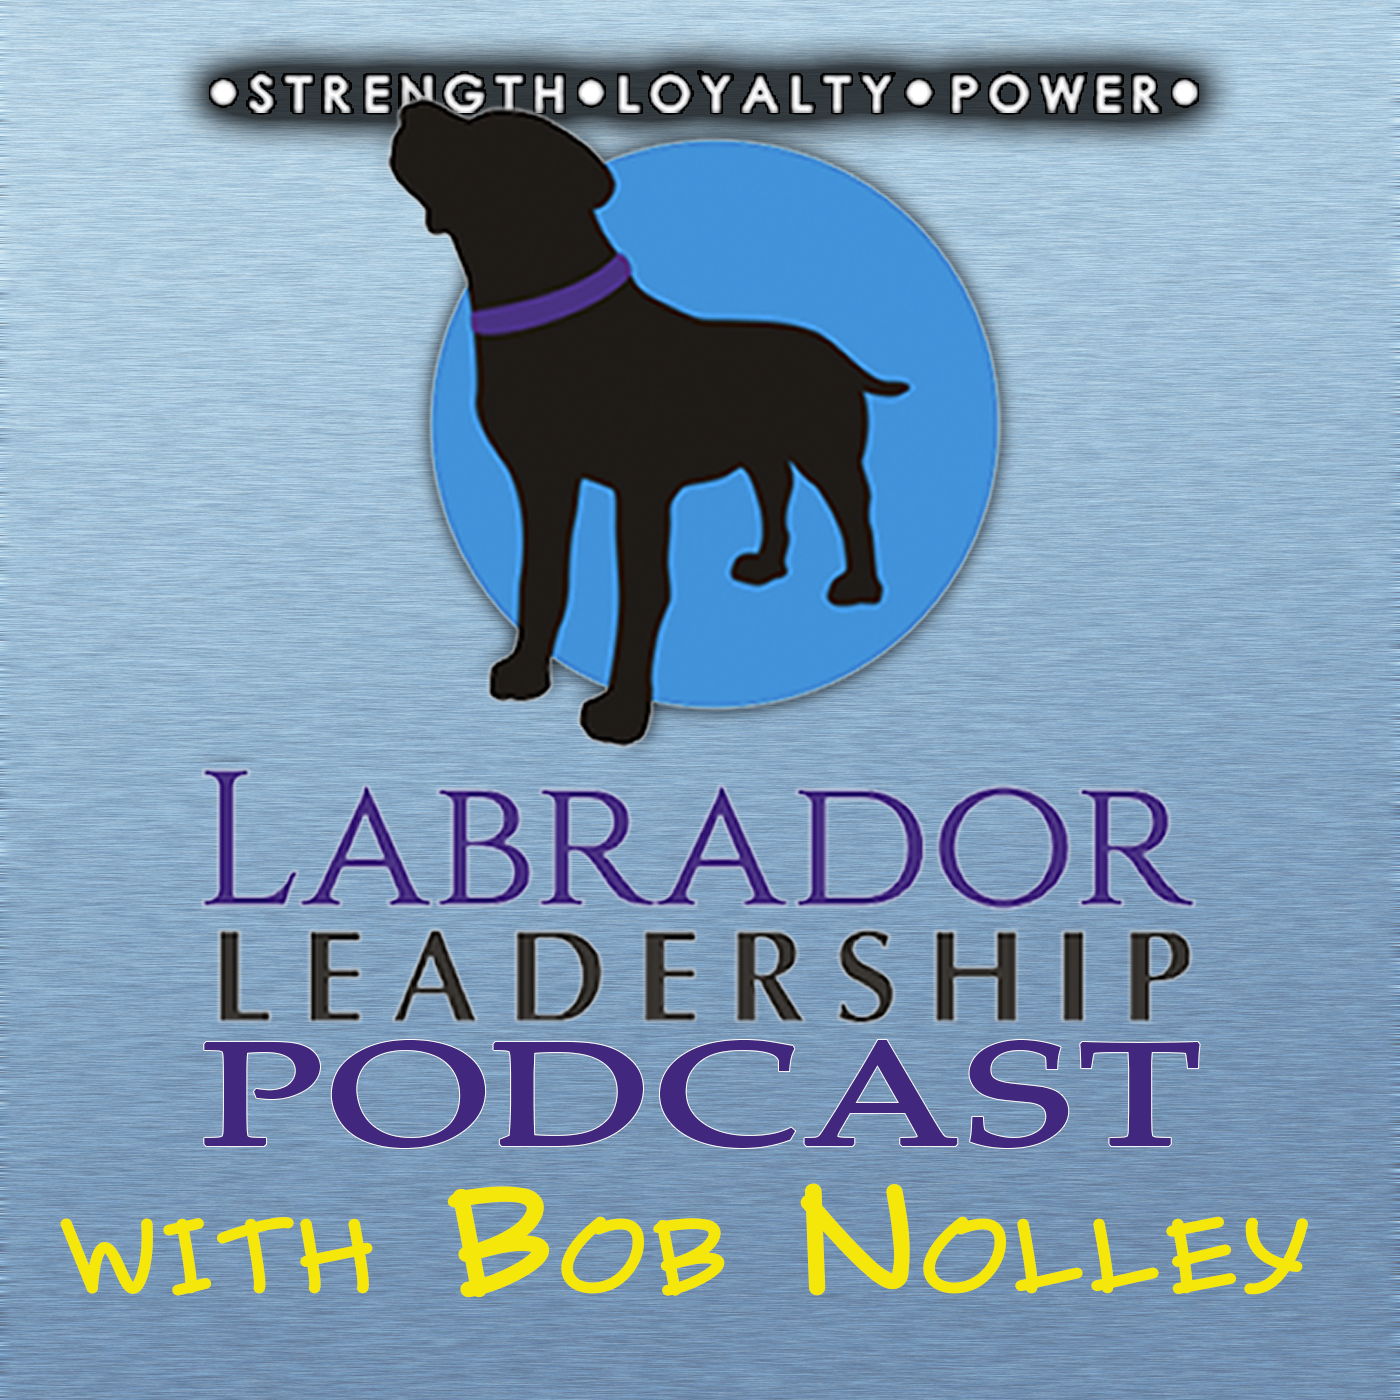 Labrador Leadership Podcast With Bob Nolley show art